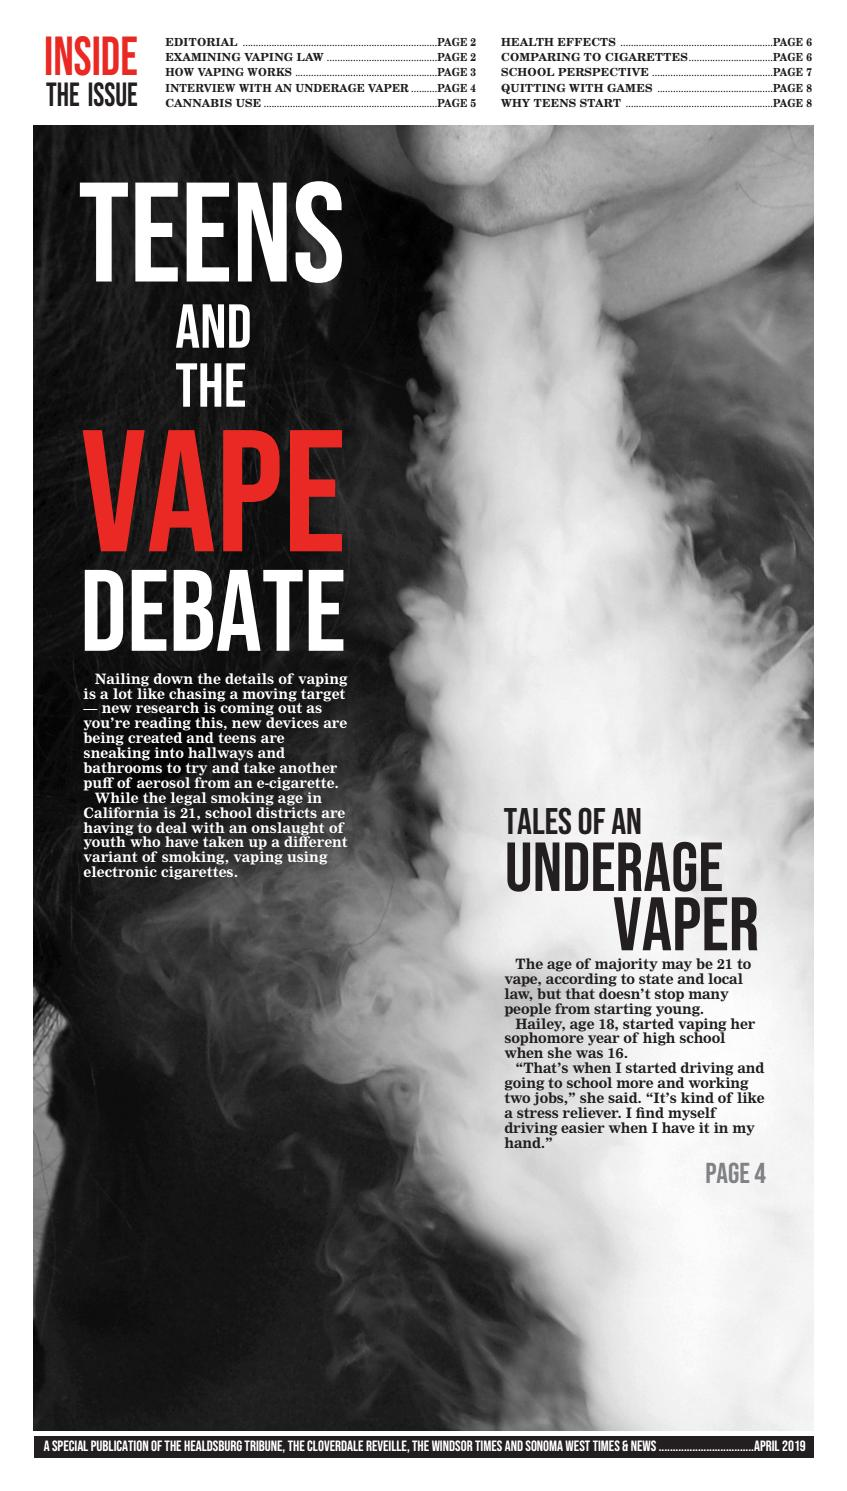 Teens and the Vape Debate 2019 by Sonoma West Publishers - issuu